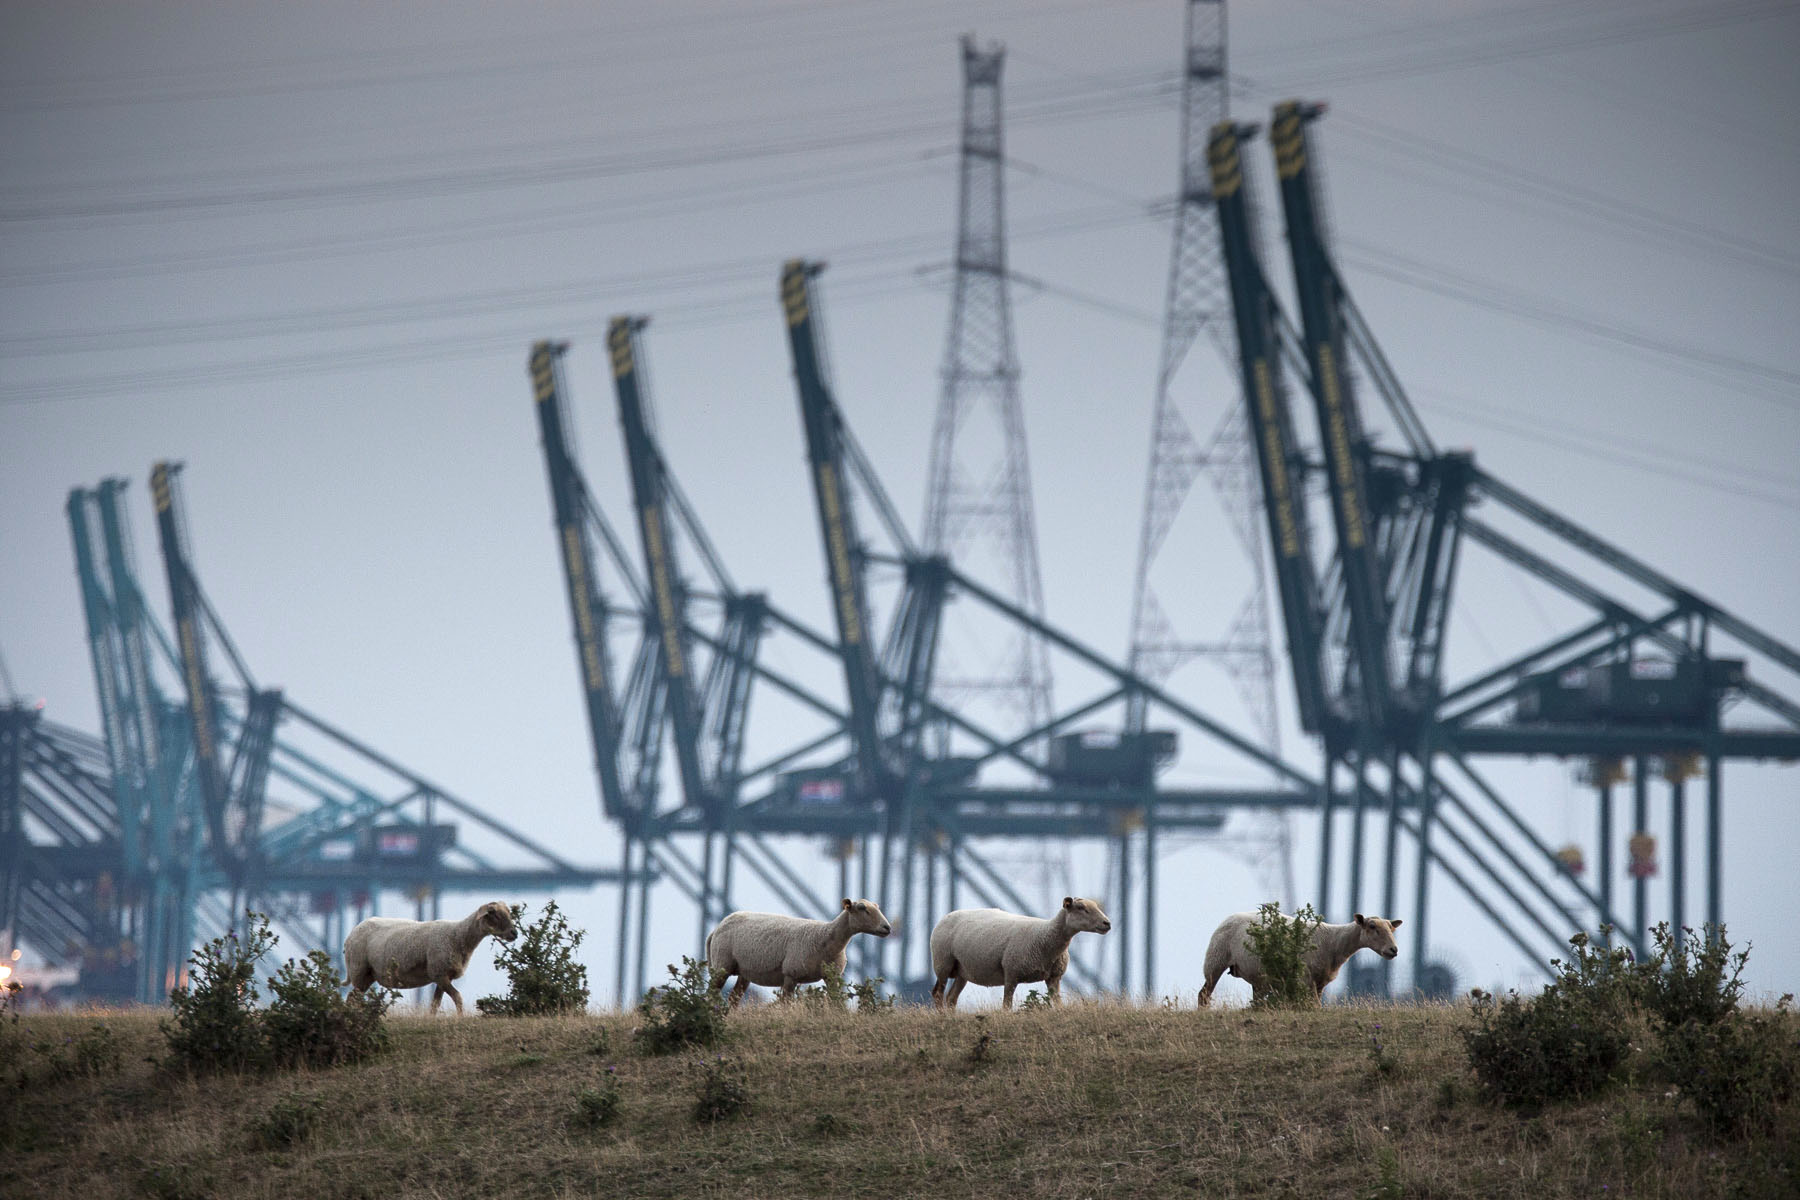 Sheep near Lillo. In the back the cranes of the docks on the left bank of the Scheldt river in July 2010